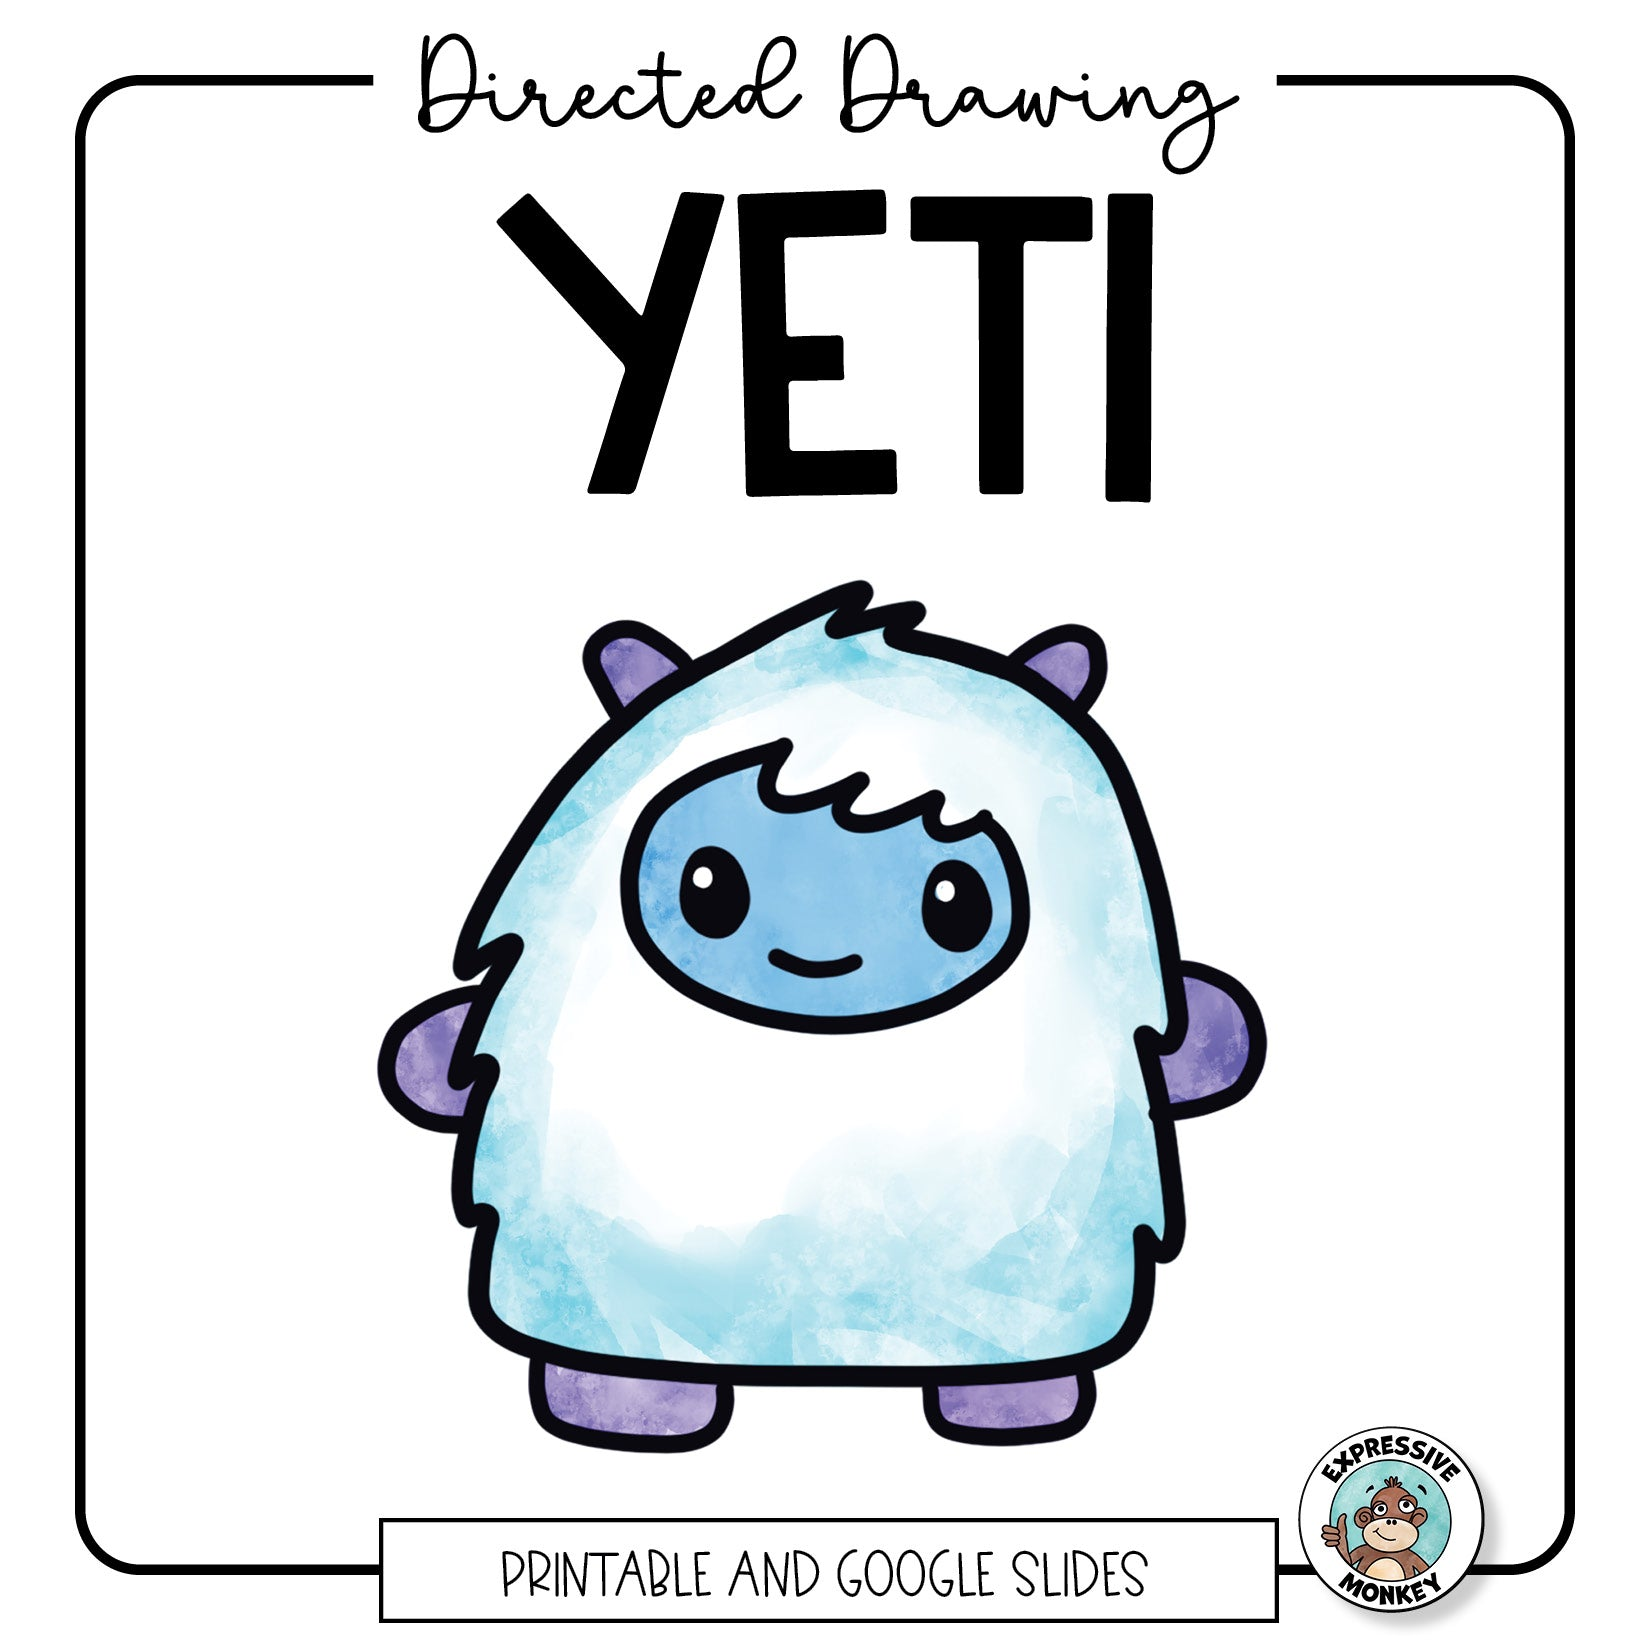 Yeti Directed Drawing Google Slides Distance Learning Activity